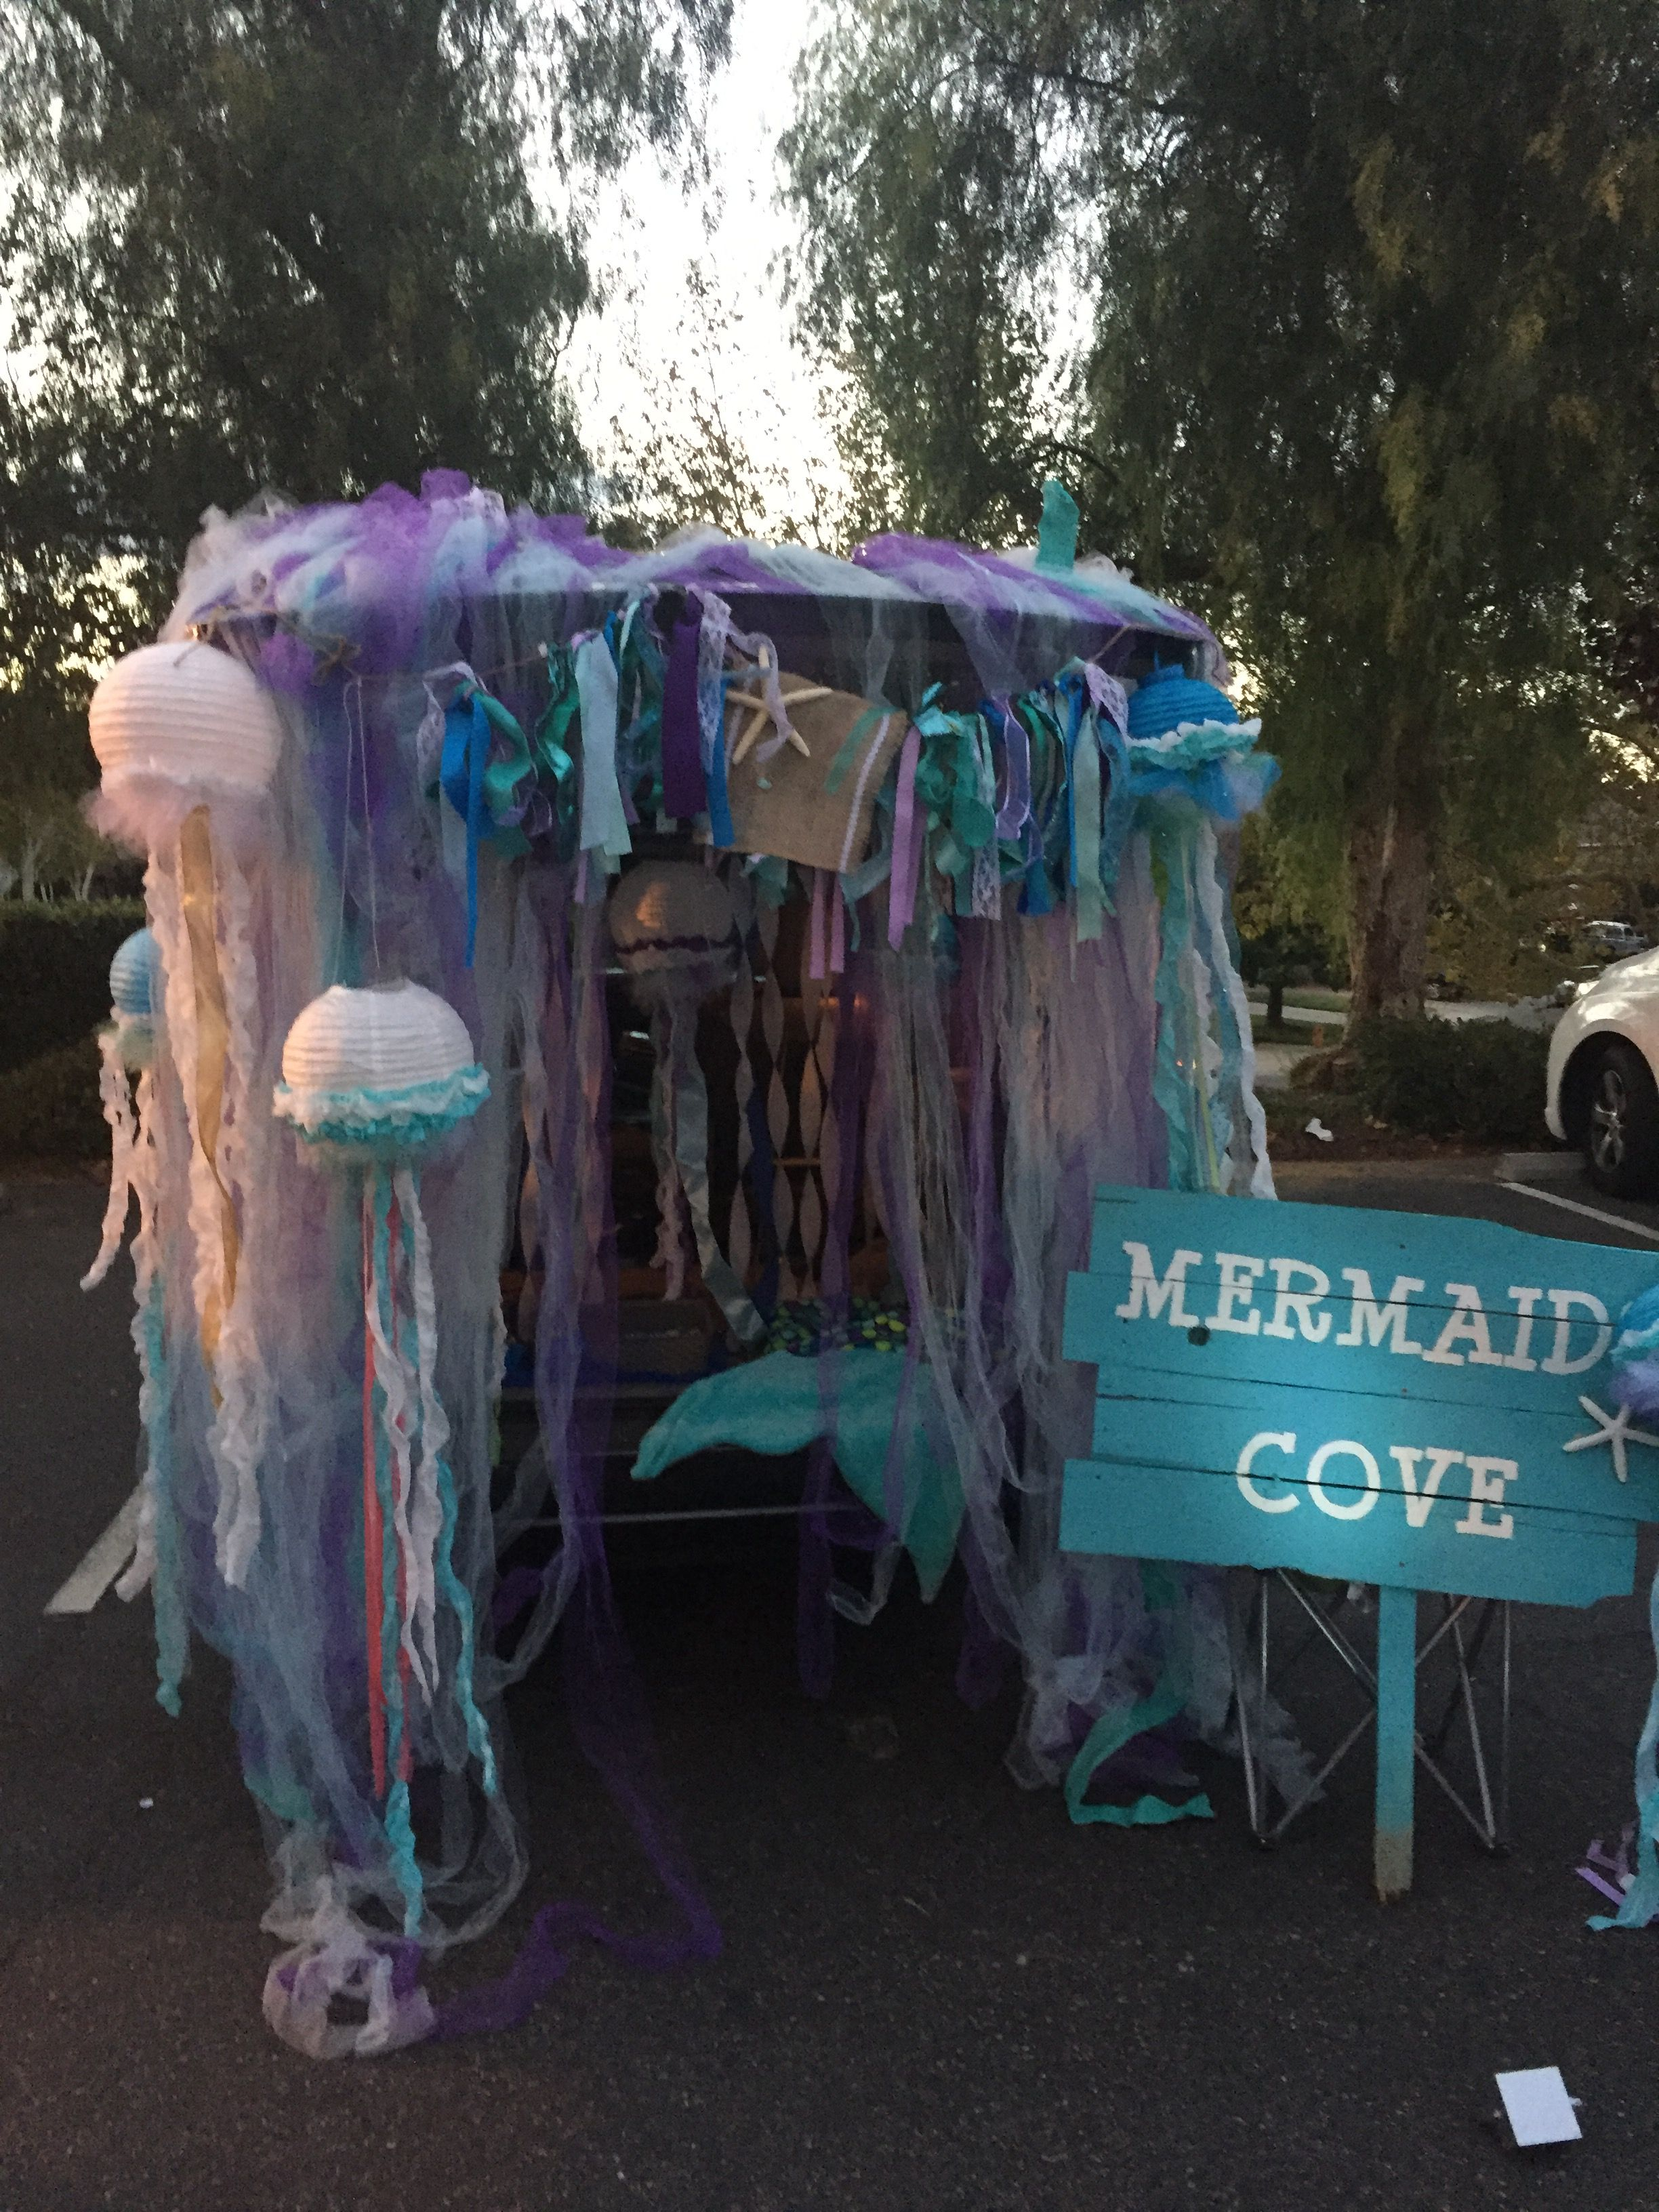 The Cove Halloween Party 2020 Trunk or Treat | Trunk or treat, Truck or treat, Halloween hacks